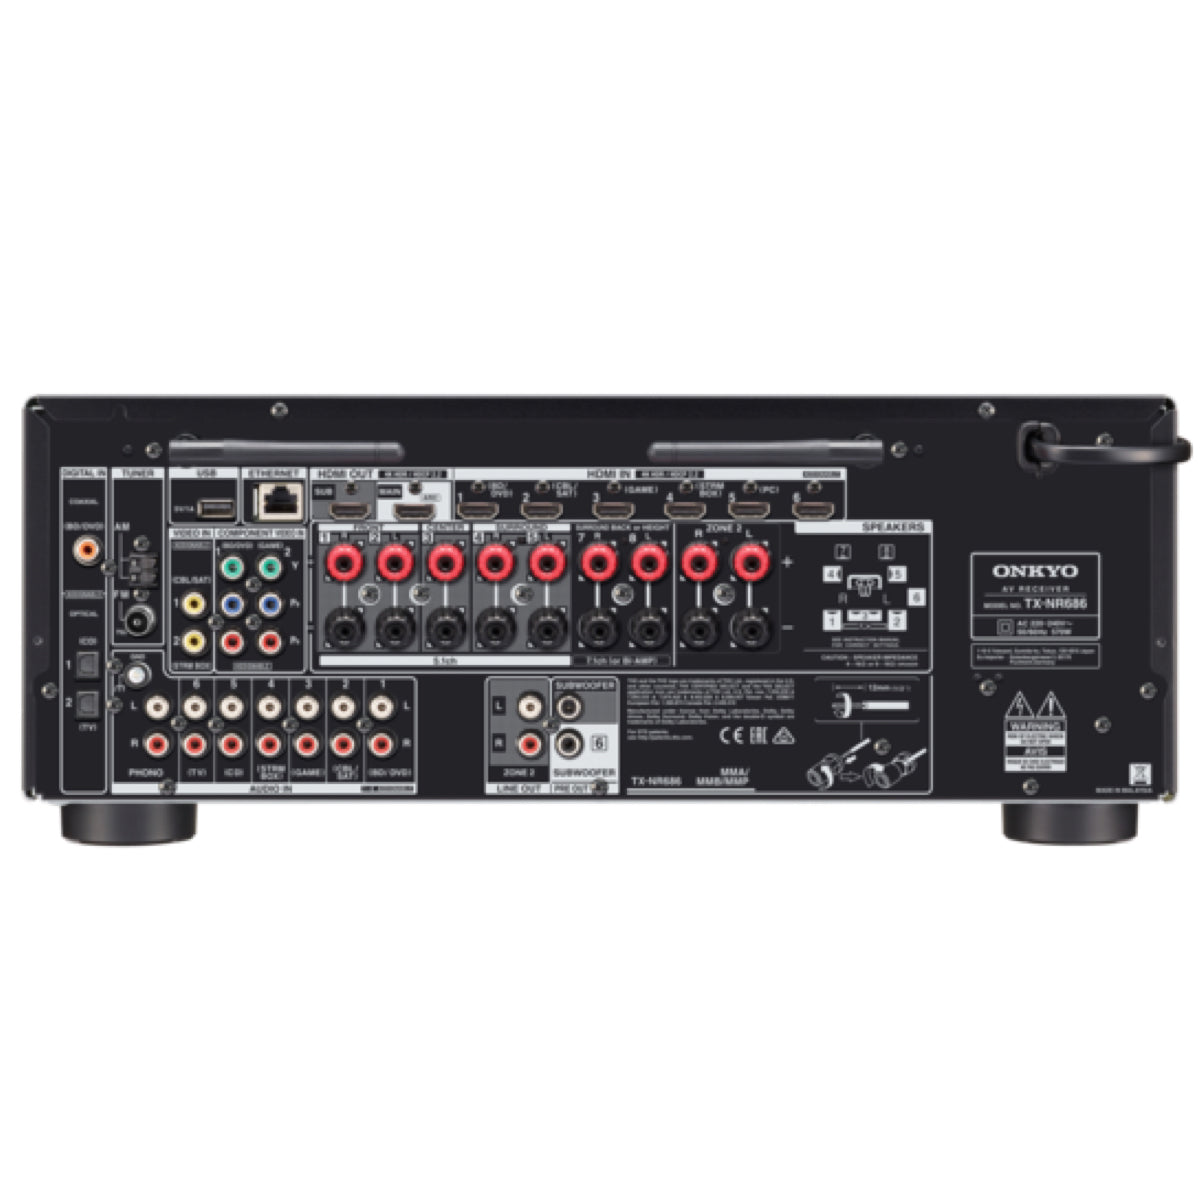 Onkyo TX-NR686 - 7.2 Channel Network AV Receiver - AVStore.in